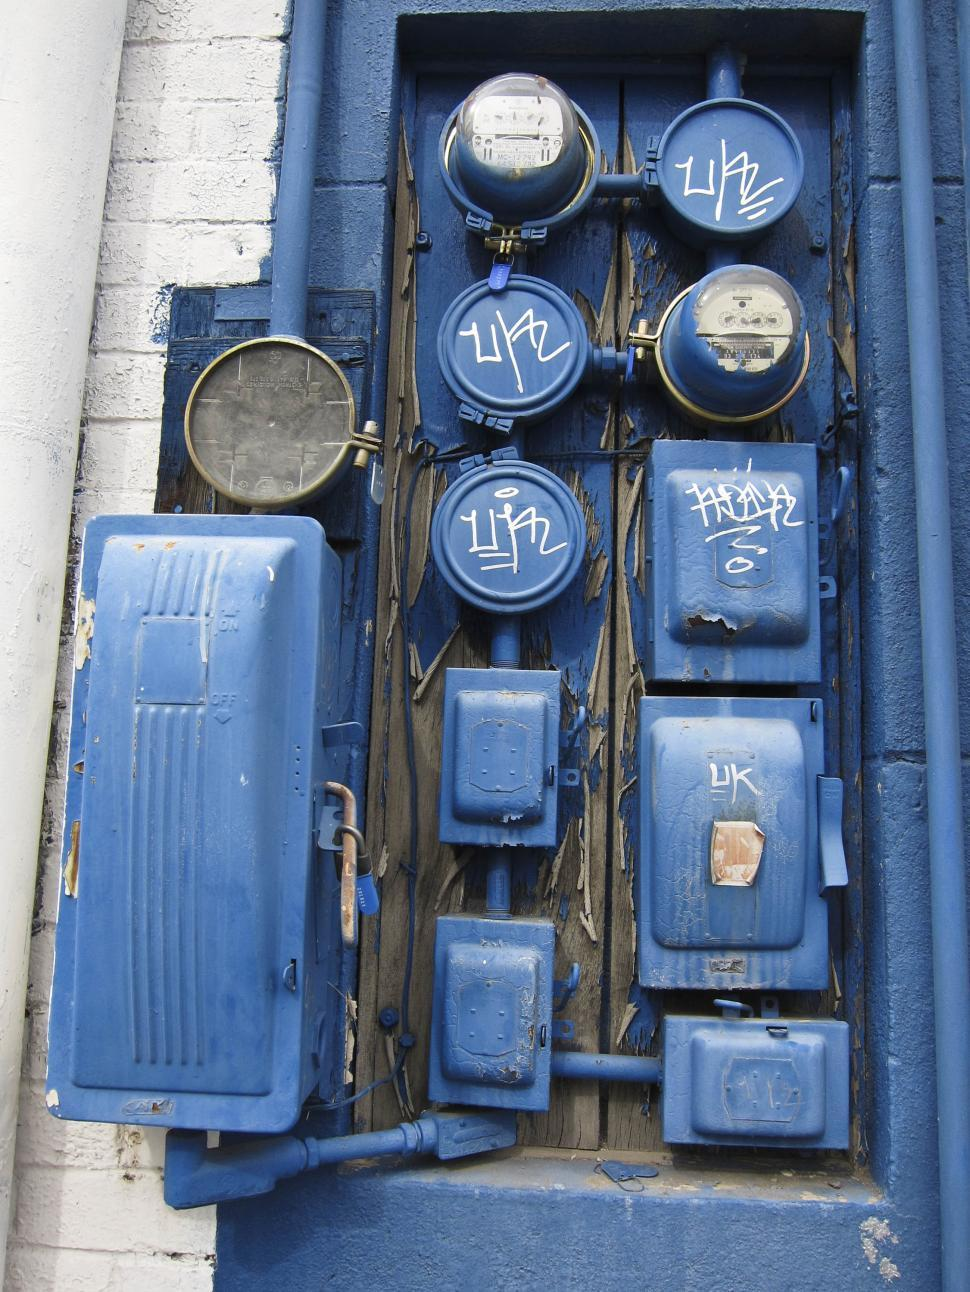 Download Free Stock HD Photo of Electric meters Online